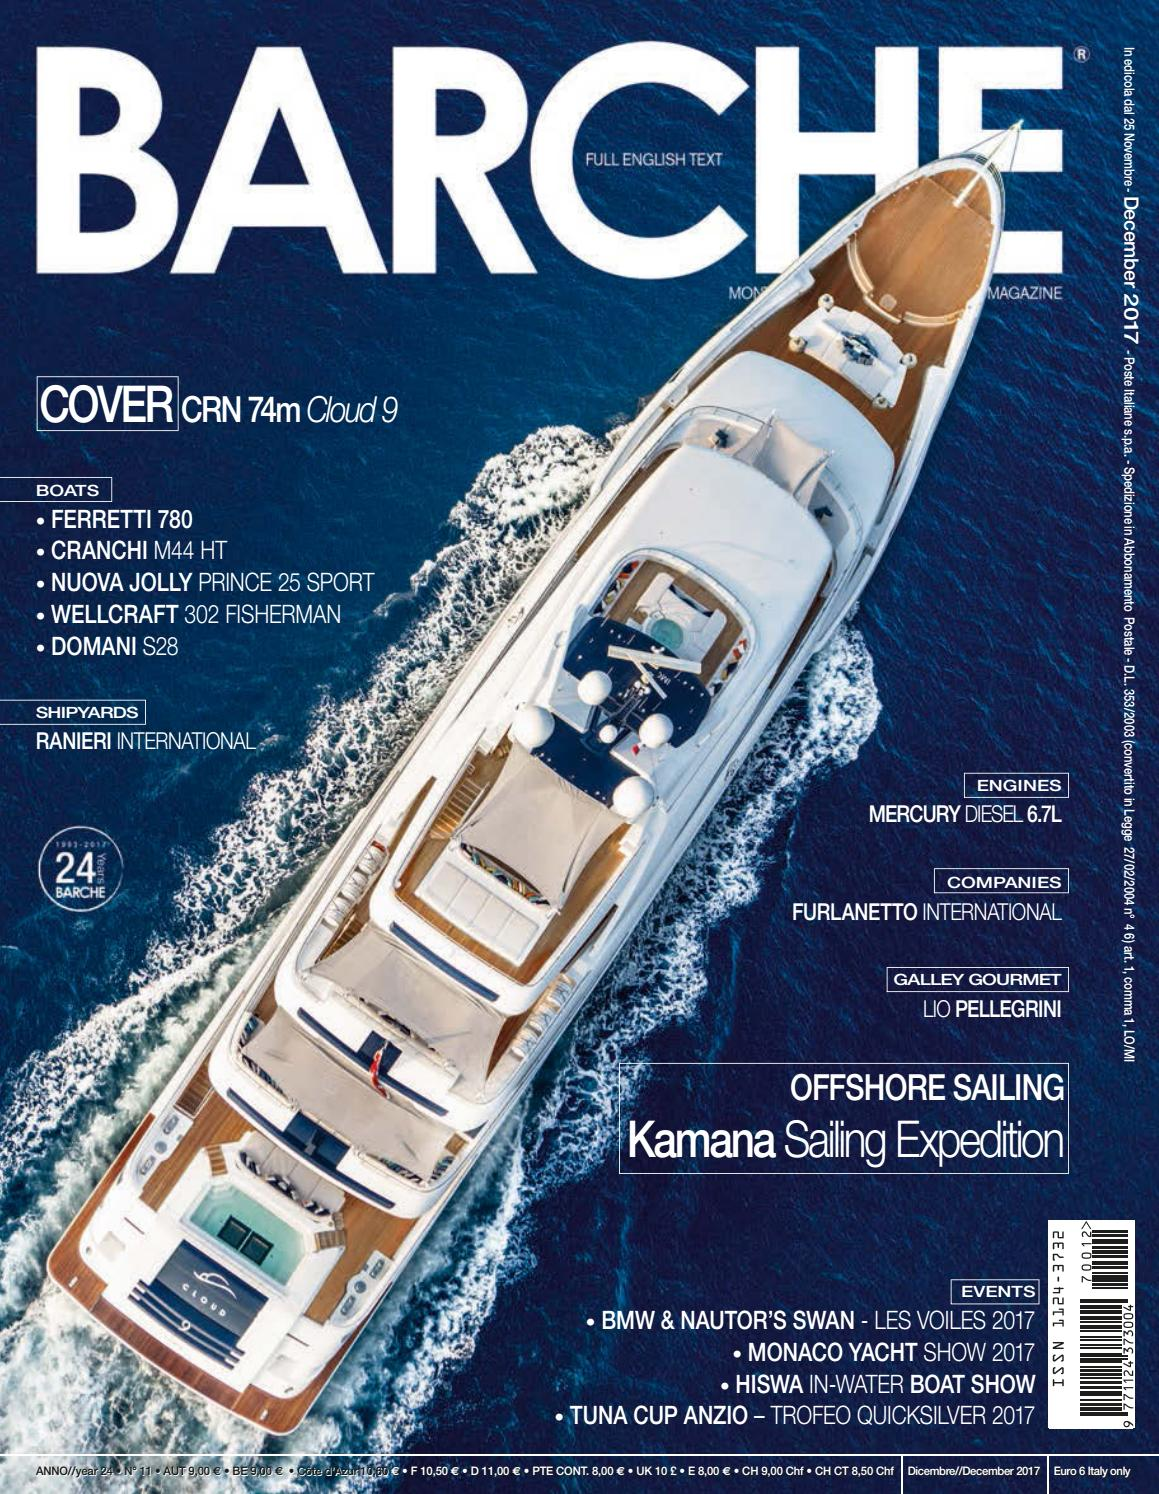 BARCHE - December 2017 by INTERNATIONAL SEA PRESS SRL - BARCHE - issuu b3d9a1b7c80